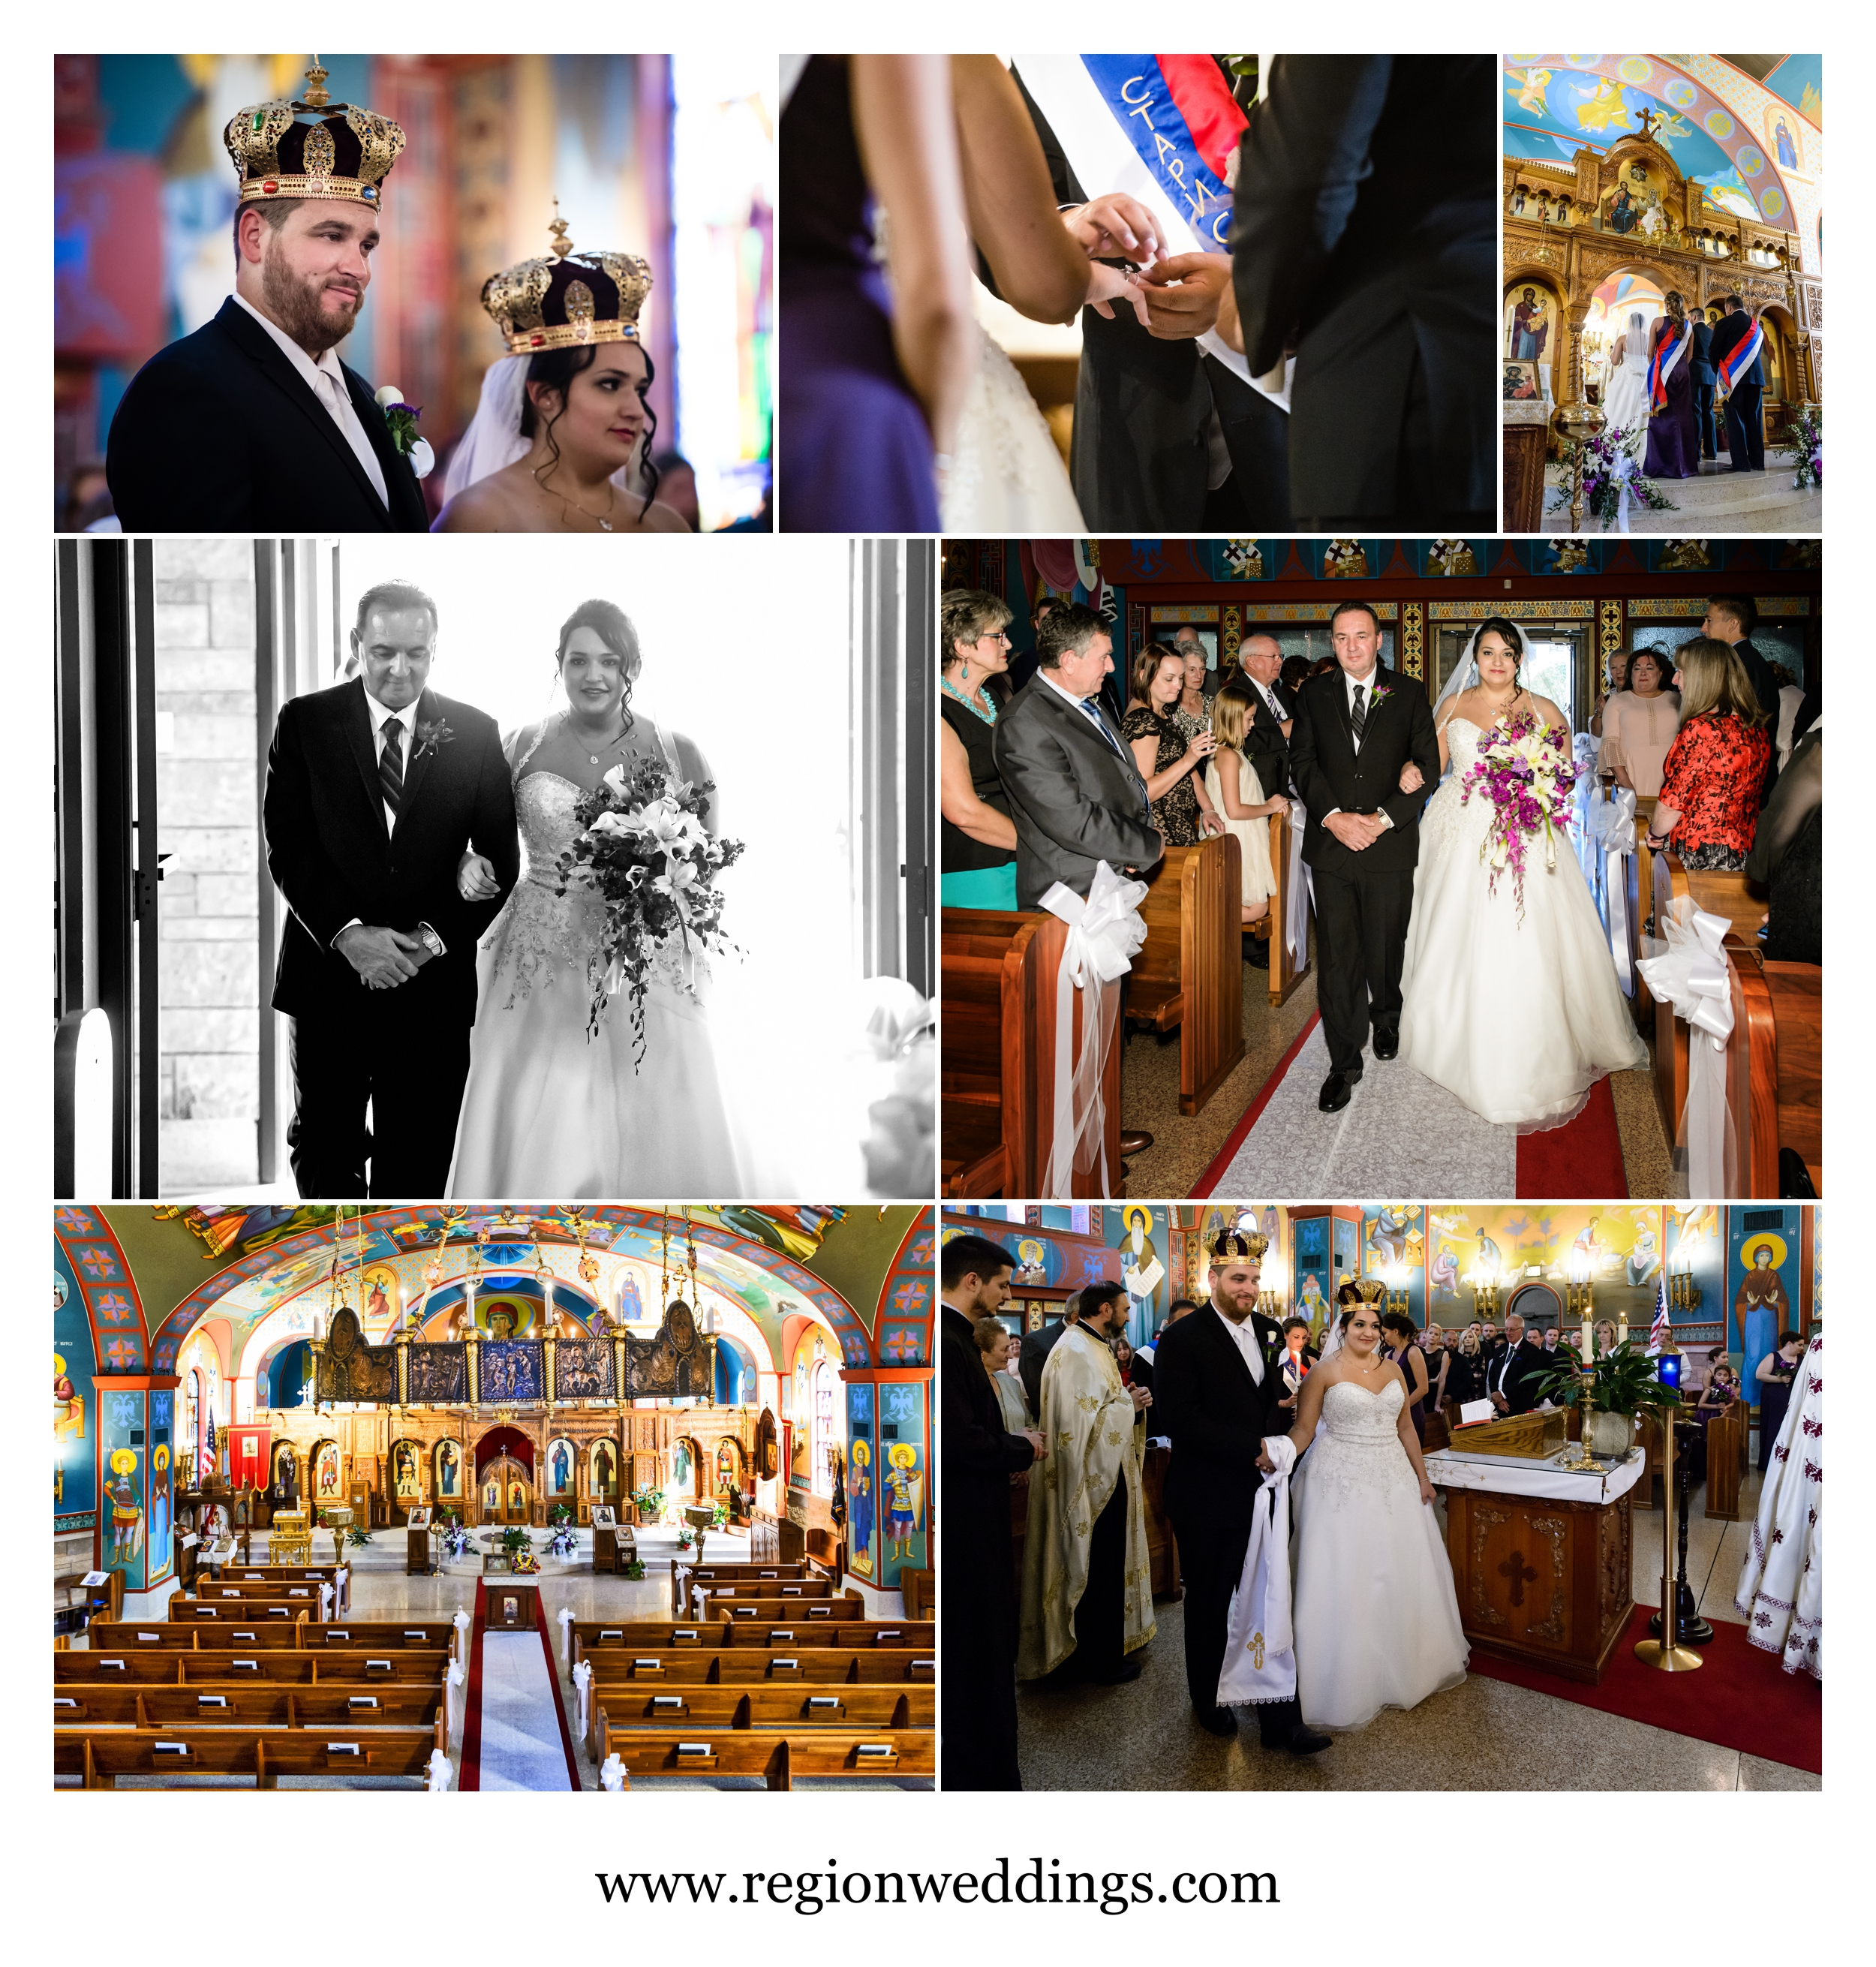 Wedding ceremony at Saint George's Church.